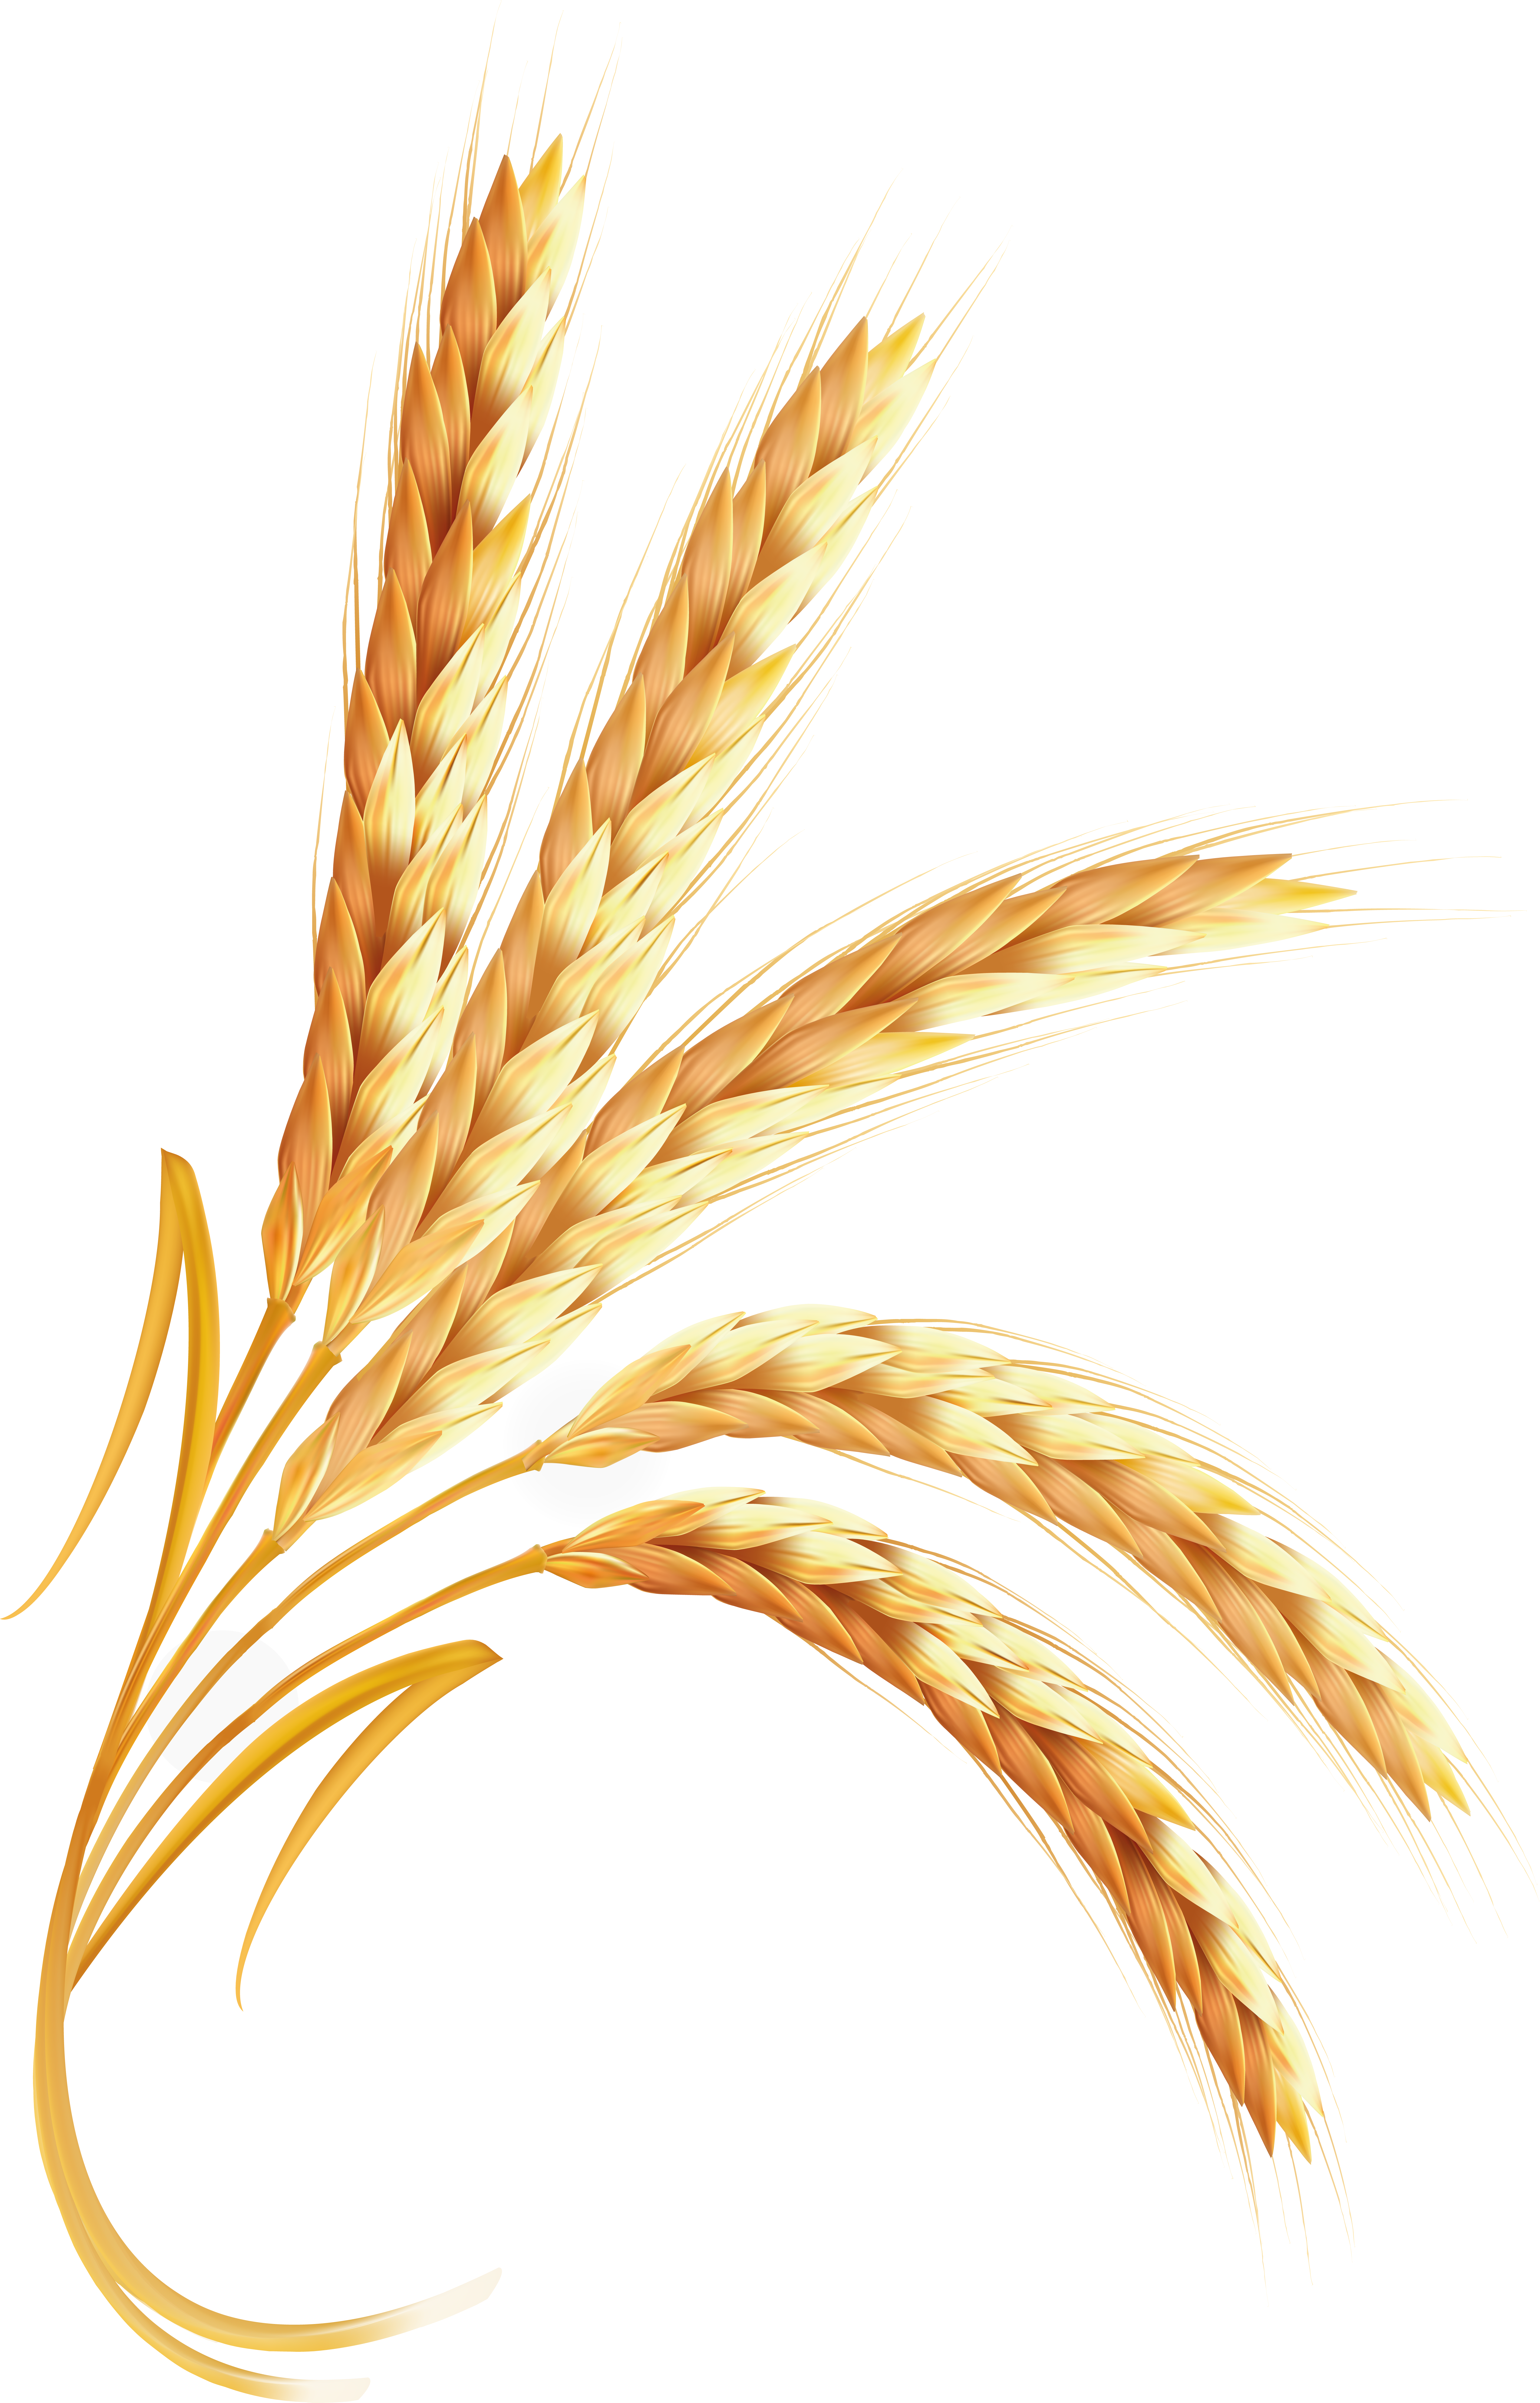 Wheat png images free. Grain clipart wheet